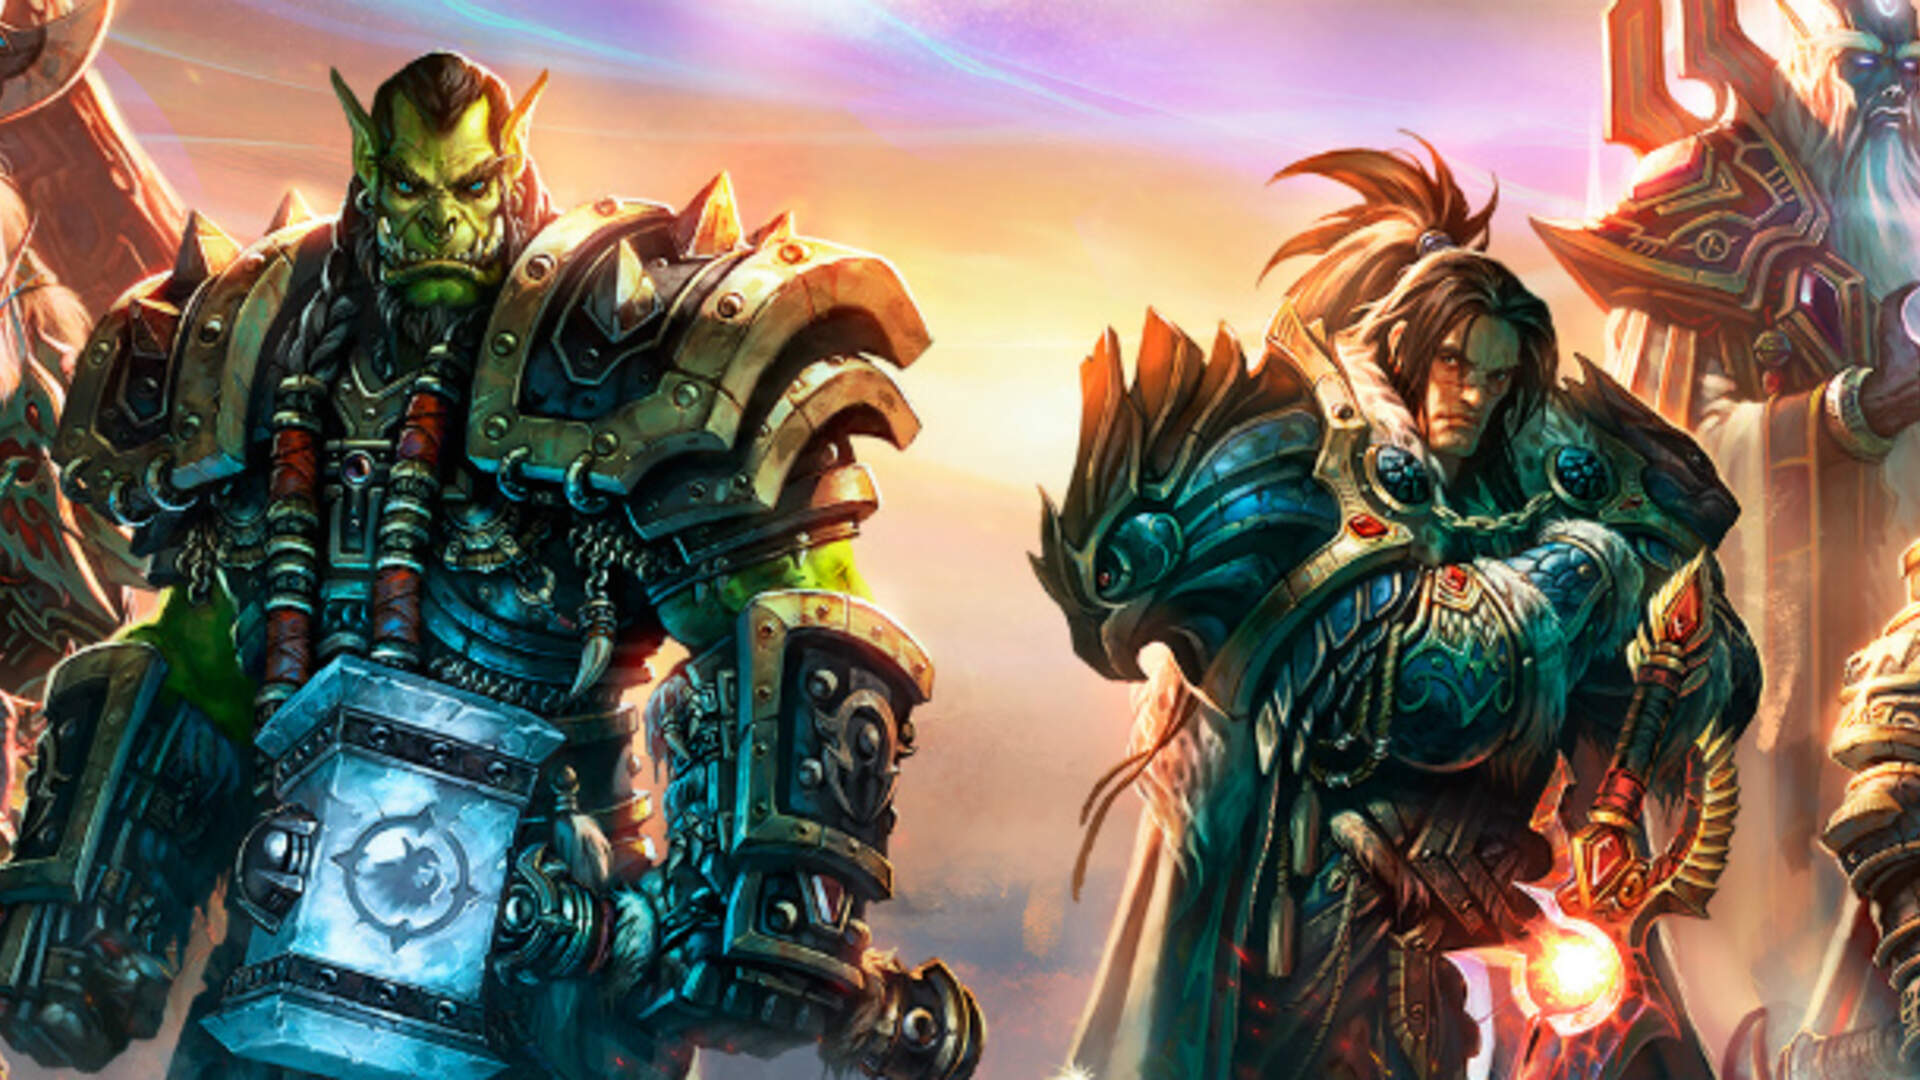 The Top 25 RPGs of All Time #21: World of Warcraft